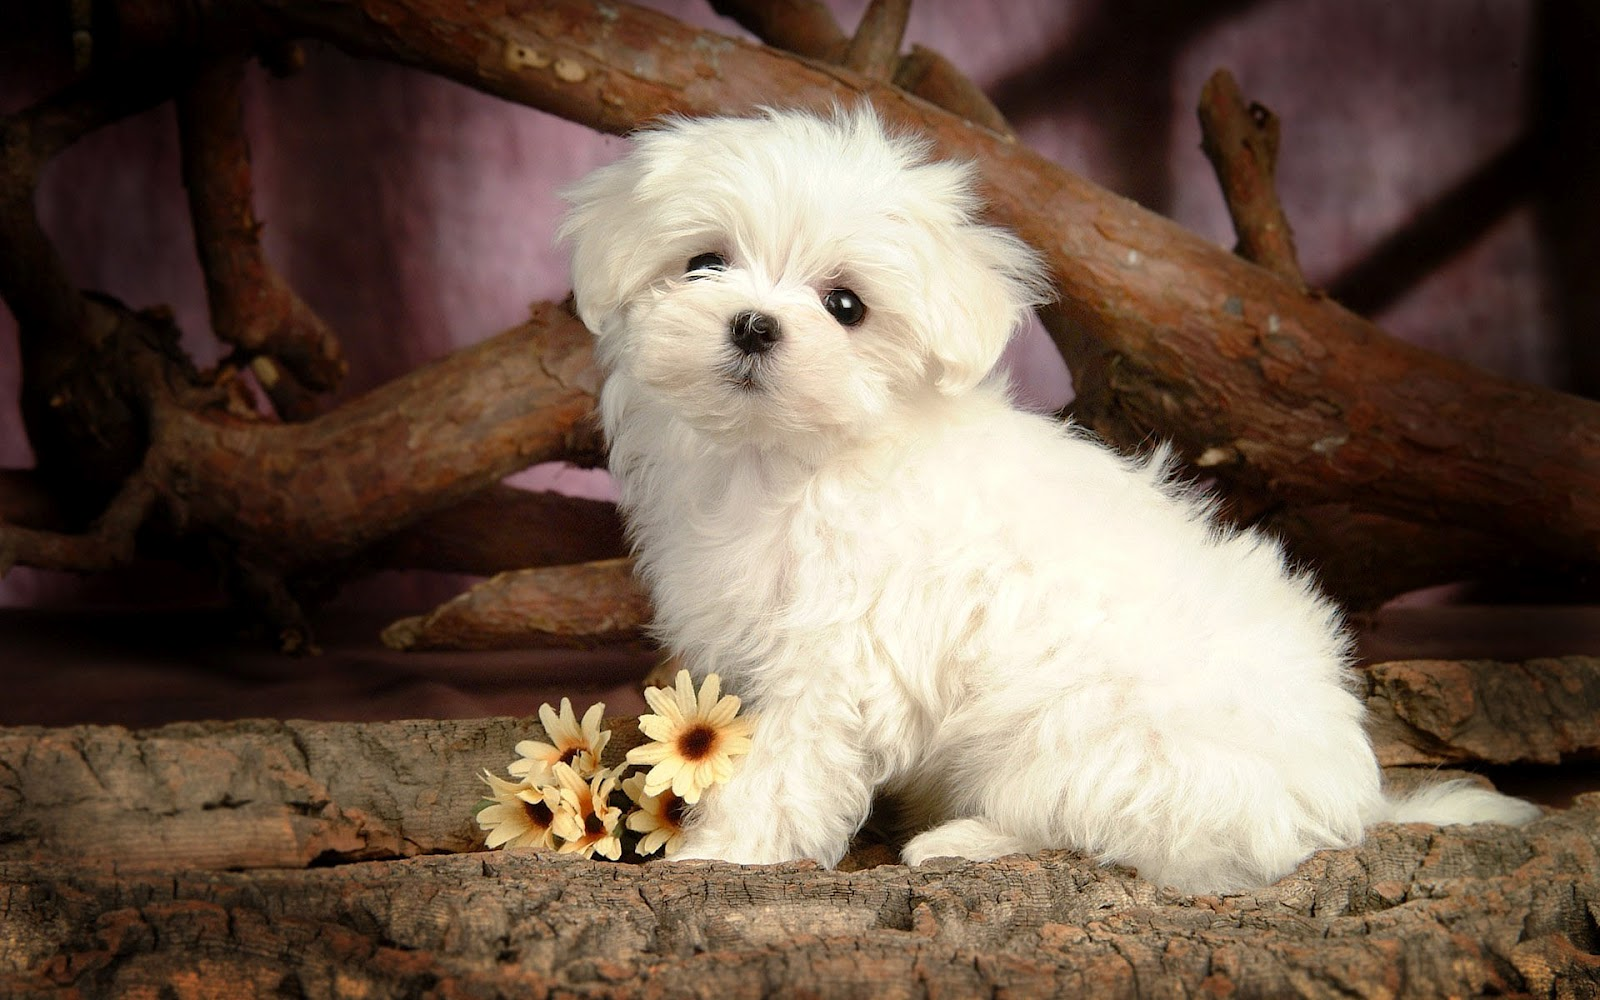 Download Cute Puppy Dog Wallpaper pictures in high definition or 1600x1000